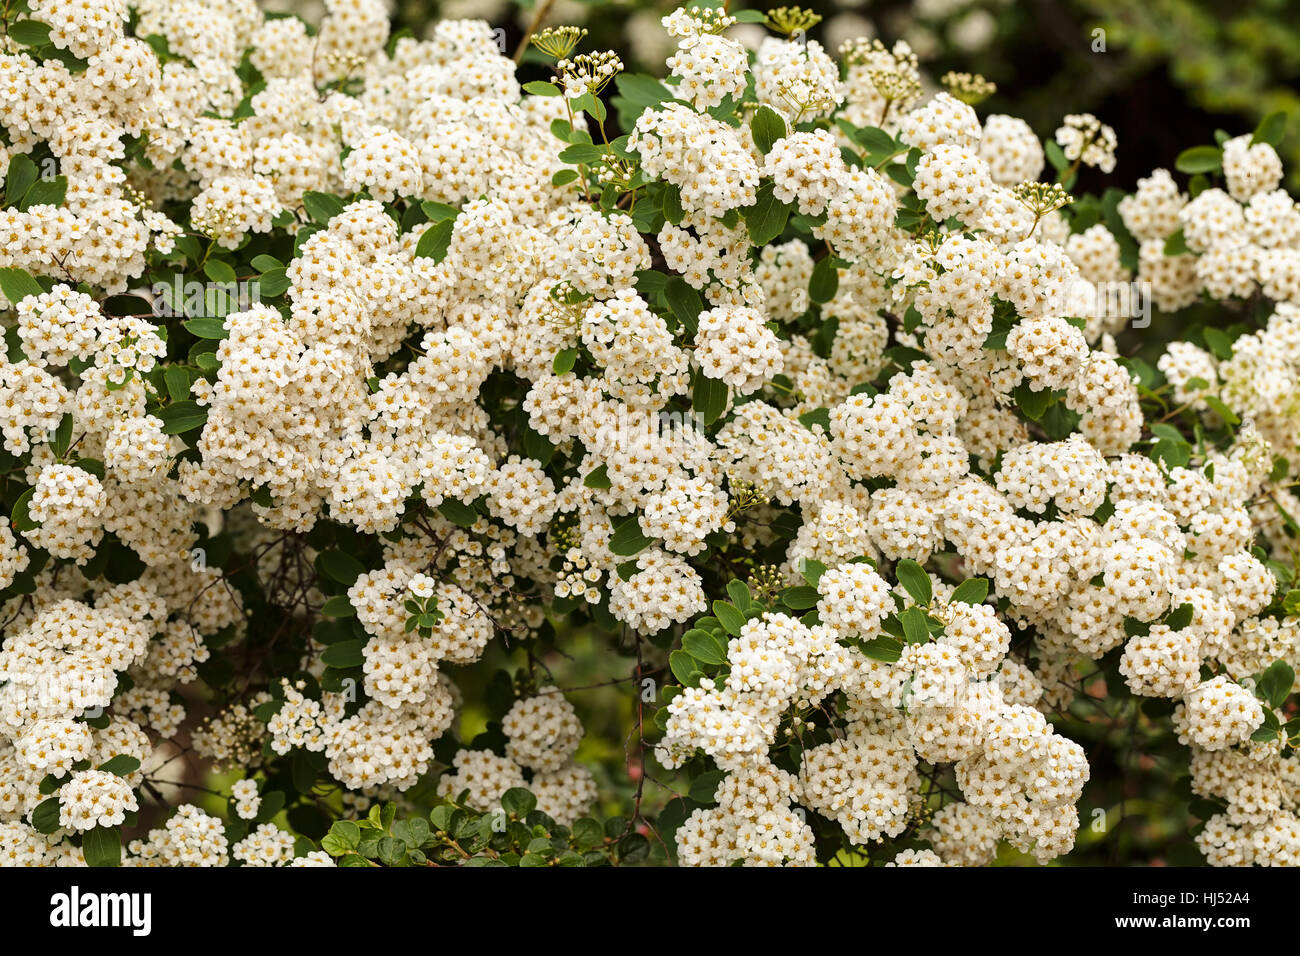 Bush with small white flowers on a branches in nature note shallow bush with small white flowers on a branches in nature note shallow depth of field mightylinksfo